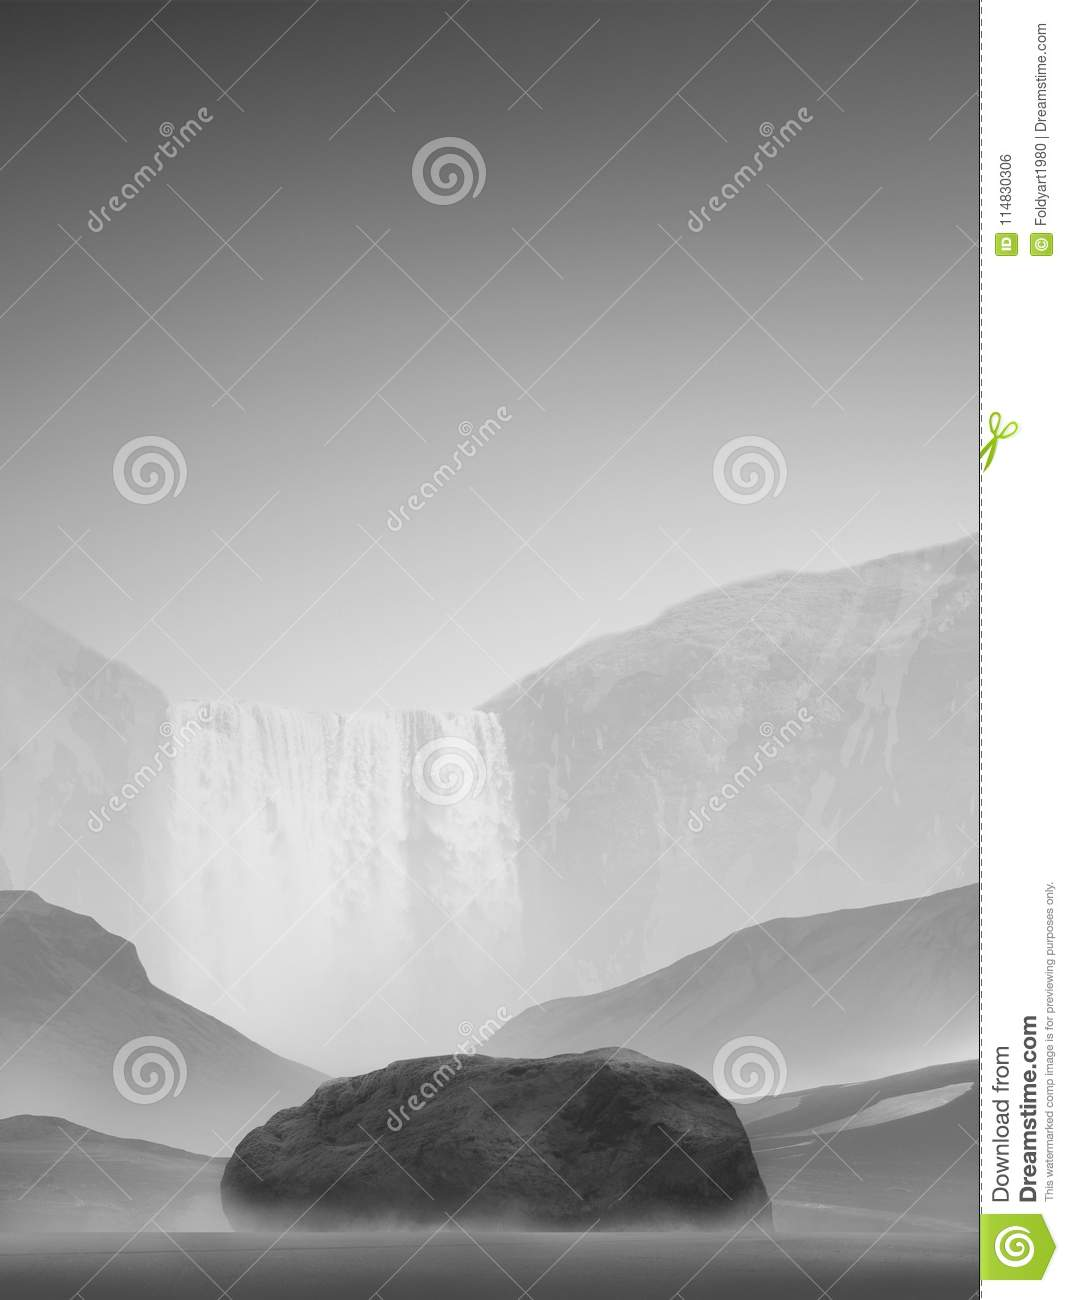 Black And White Landscape Stock Photo Image Of Wallpaper 114830306